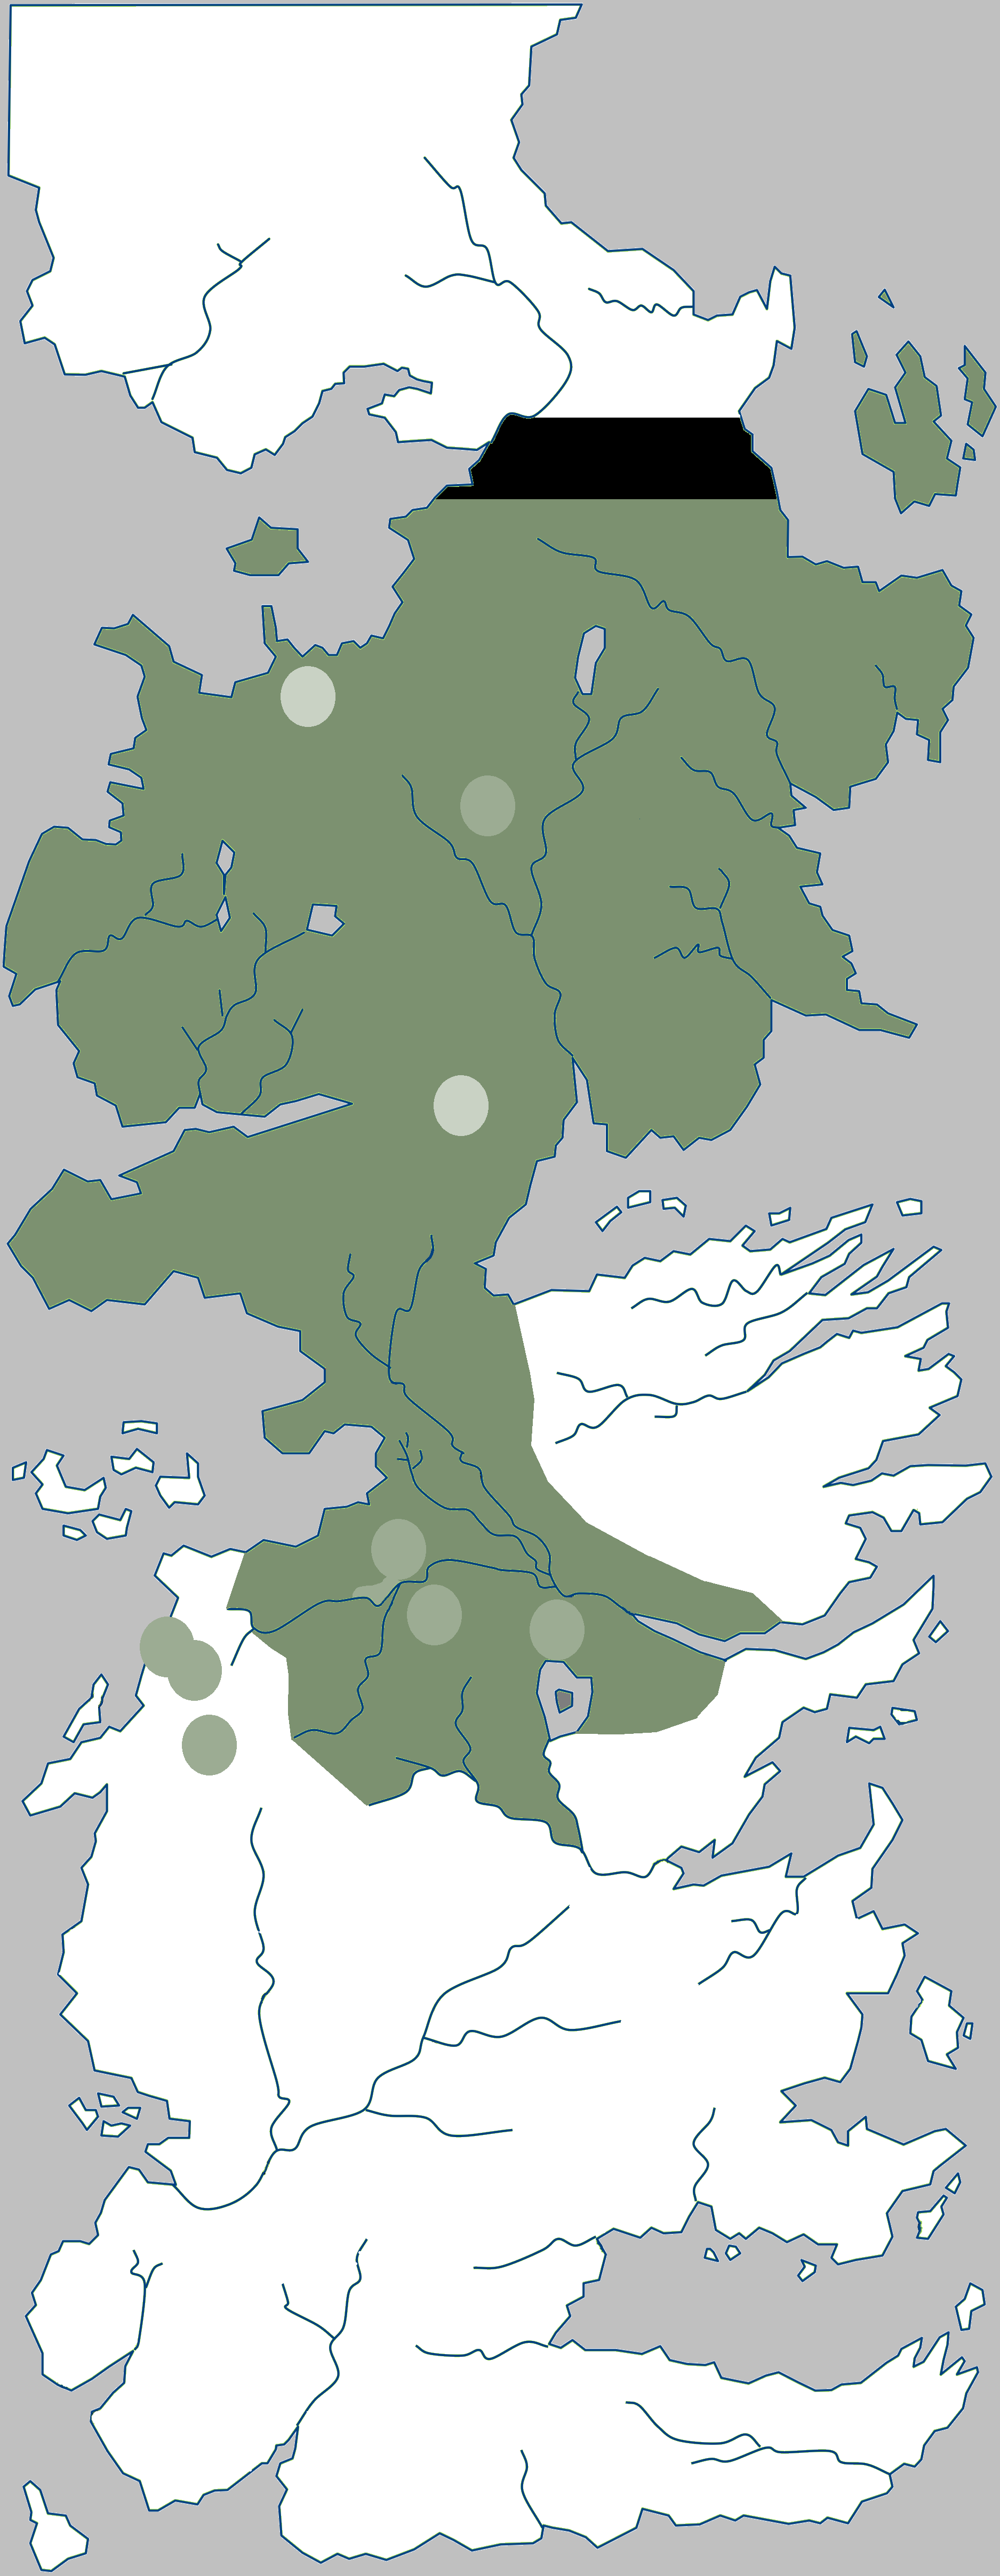 Image  North westerospng  Game of Thrones Wiki  FANDOM powered